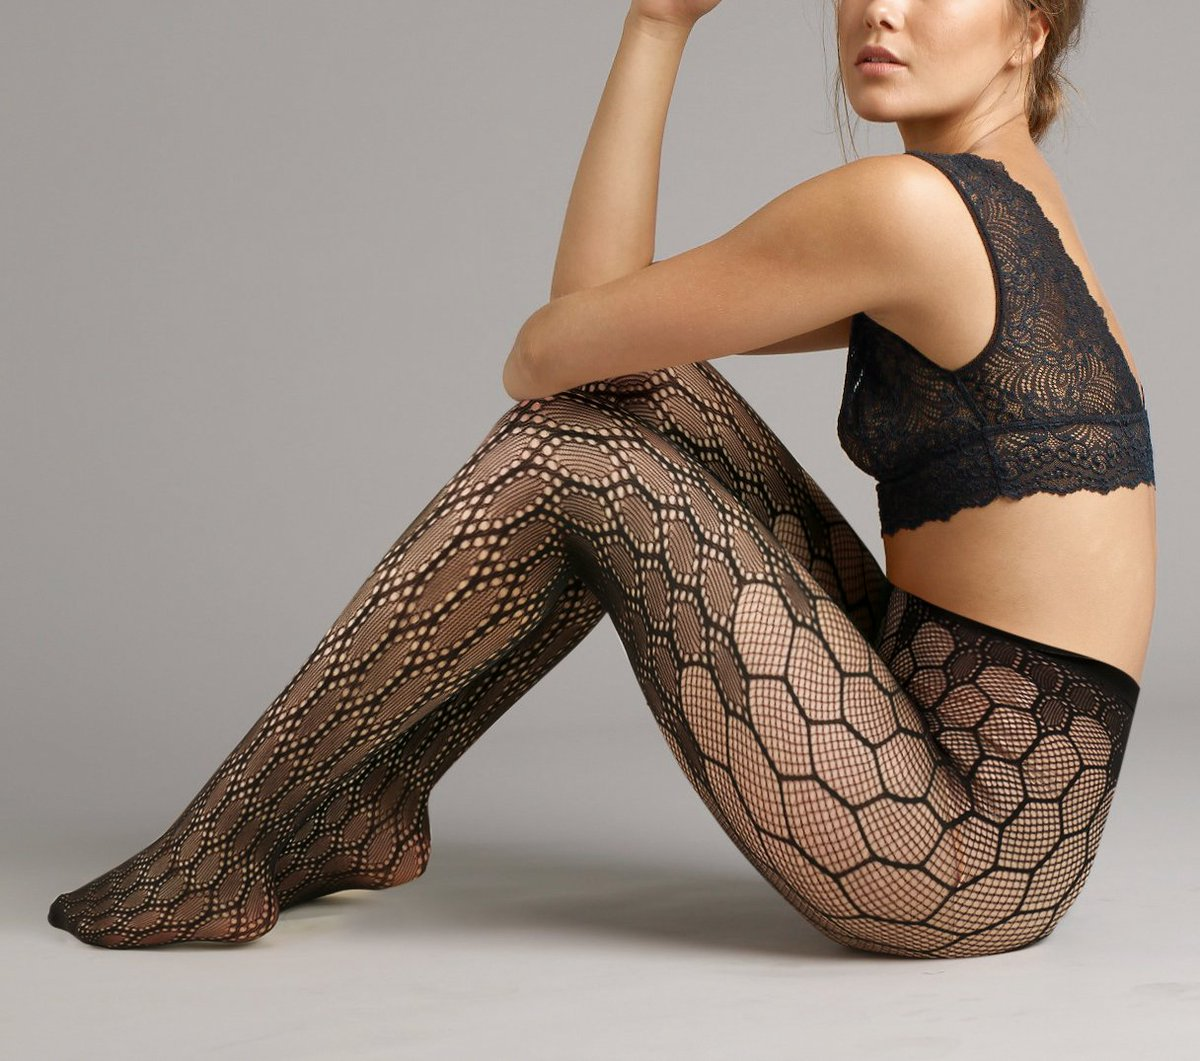 8a493070a Get yours from  uktights https   www.uktights .com product 6983 jonathan-aston-honeycomb-tights …  SS19  NewTrends   Hosierypic.twitter.com NJFx8qhEid